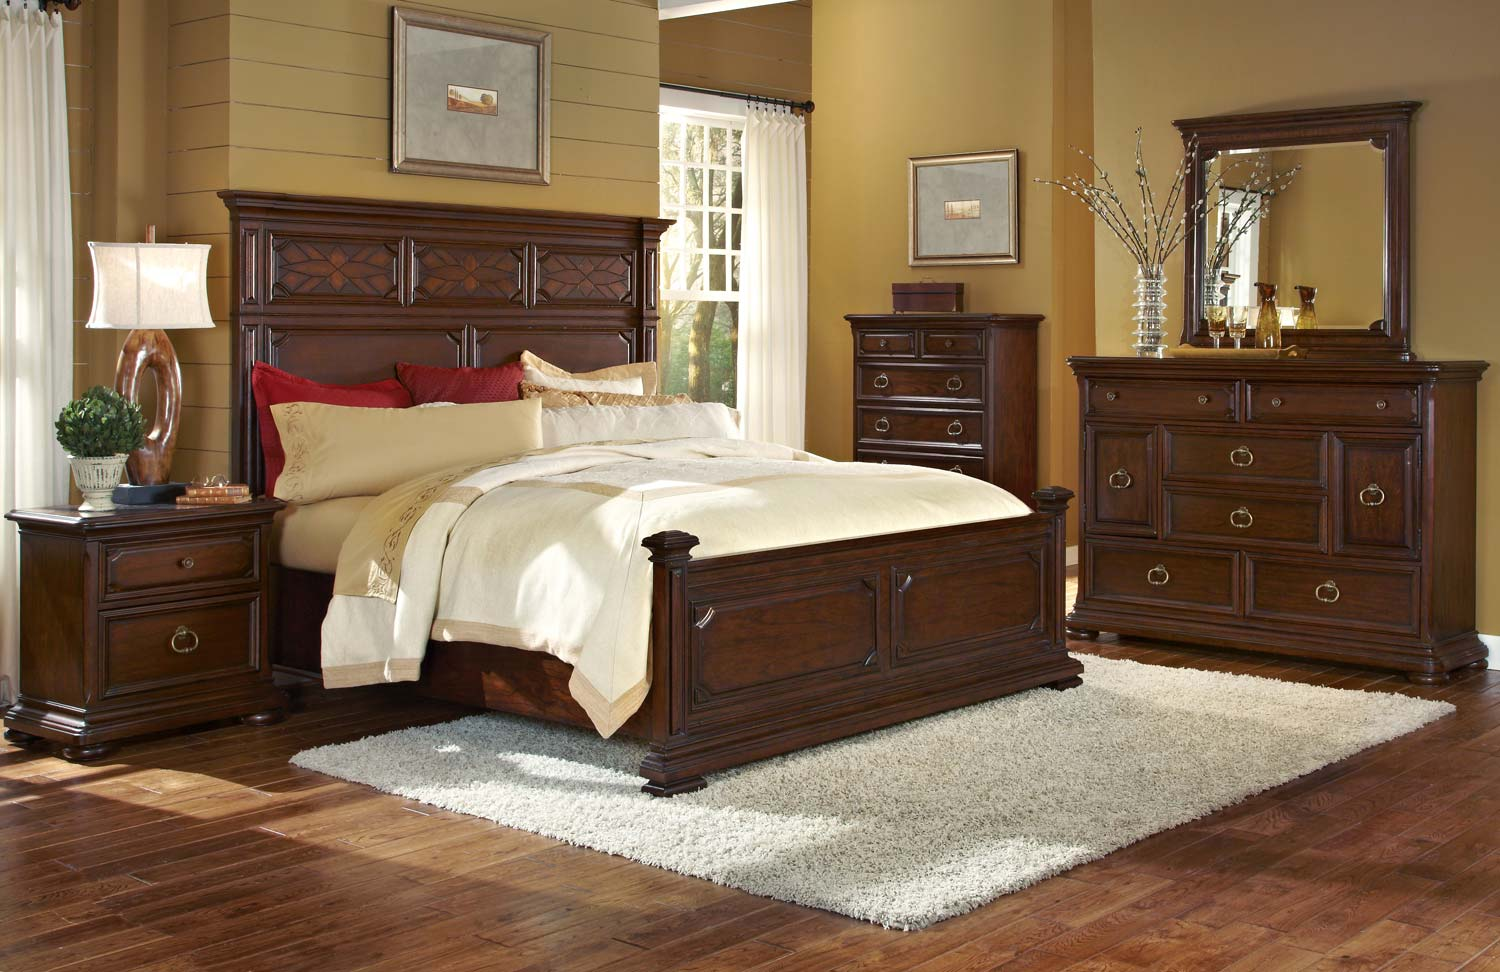 Pulaski Sedona Valley Bedroom Set